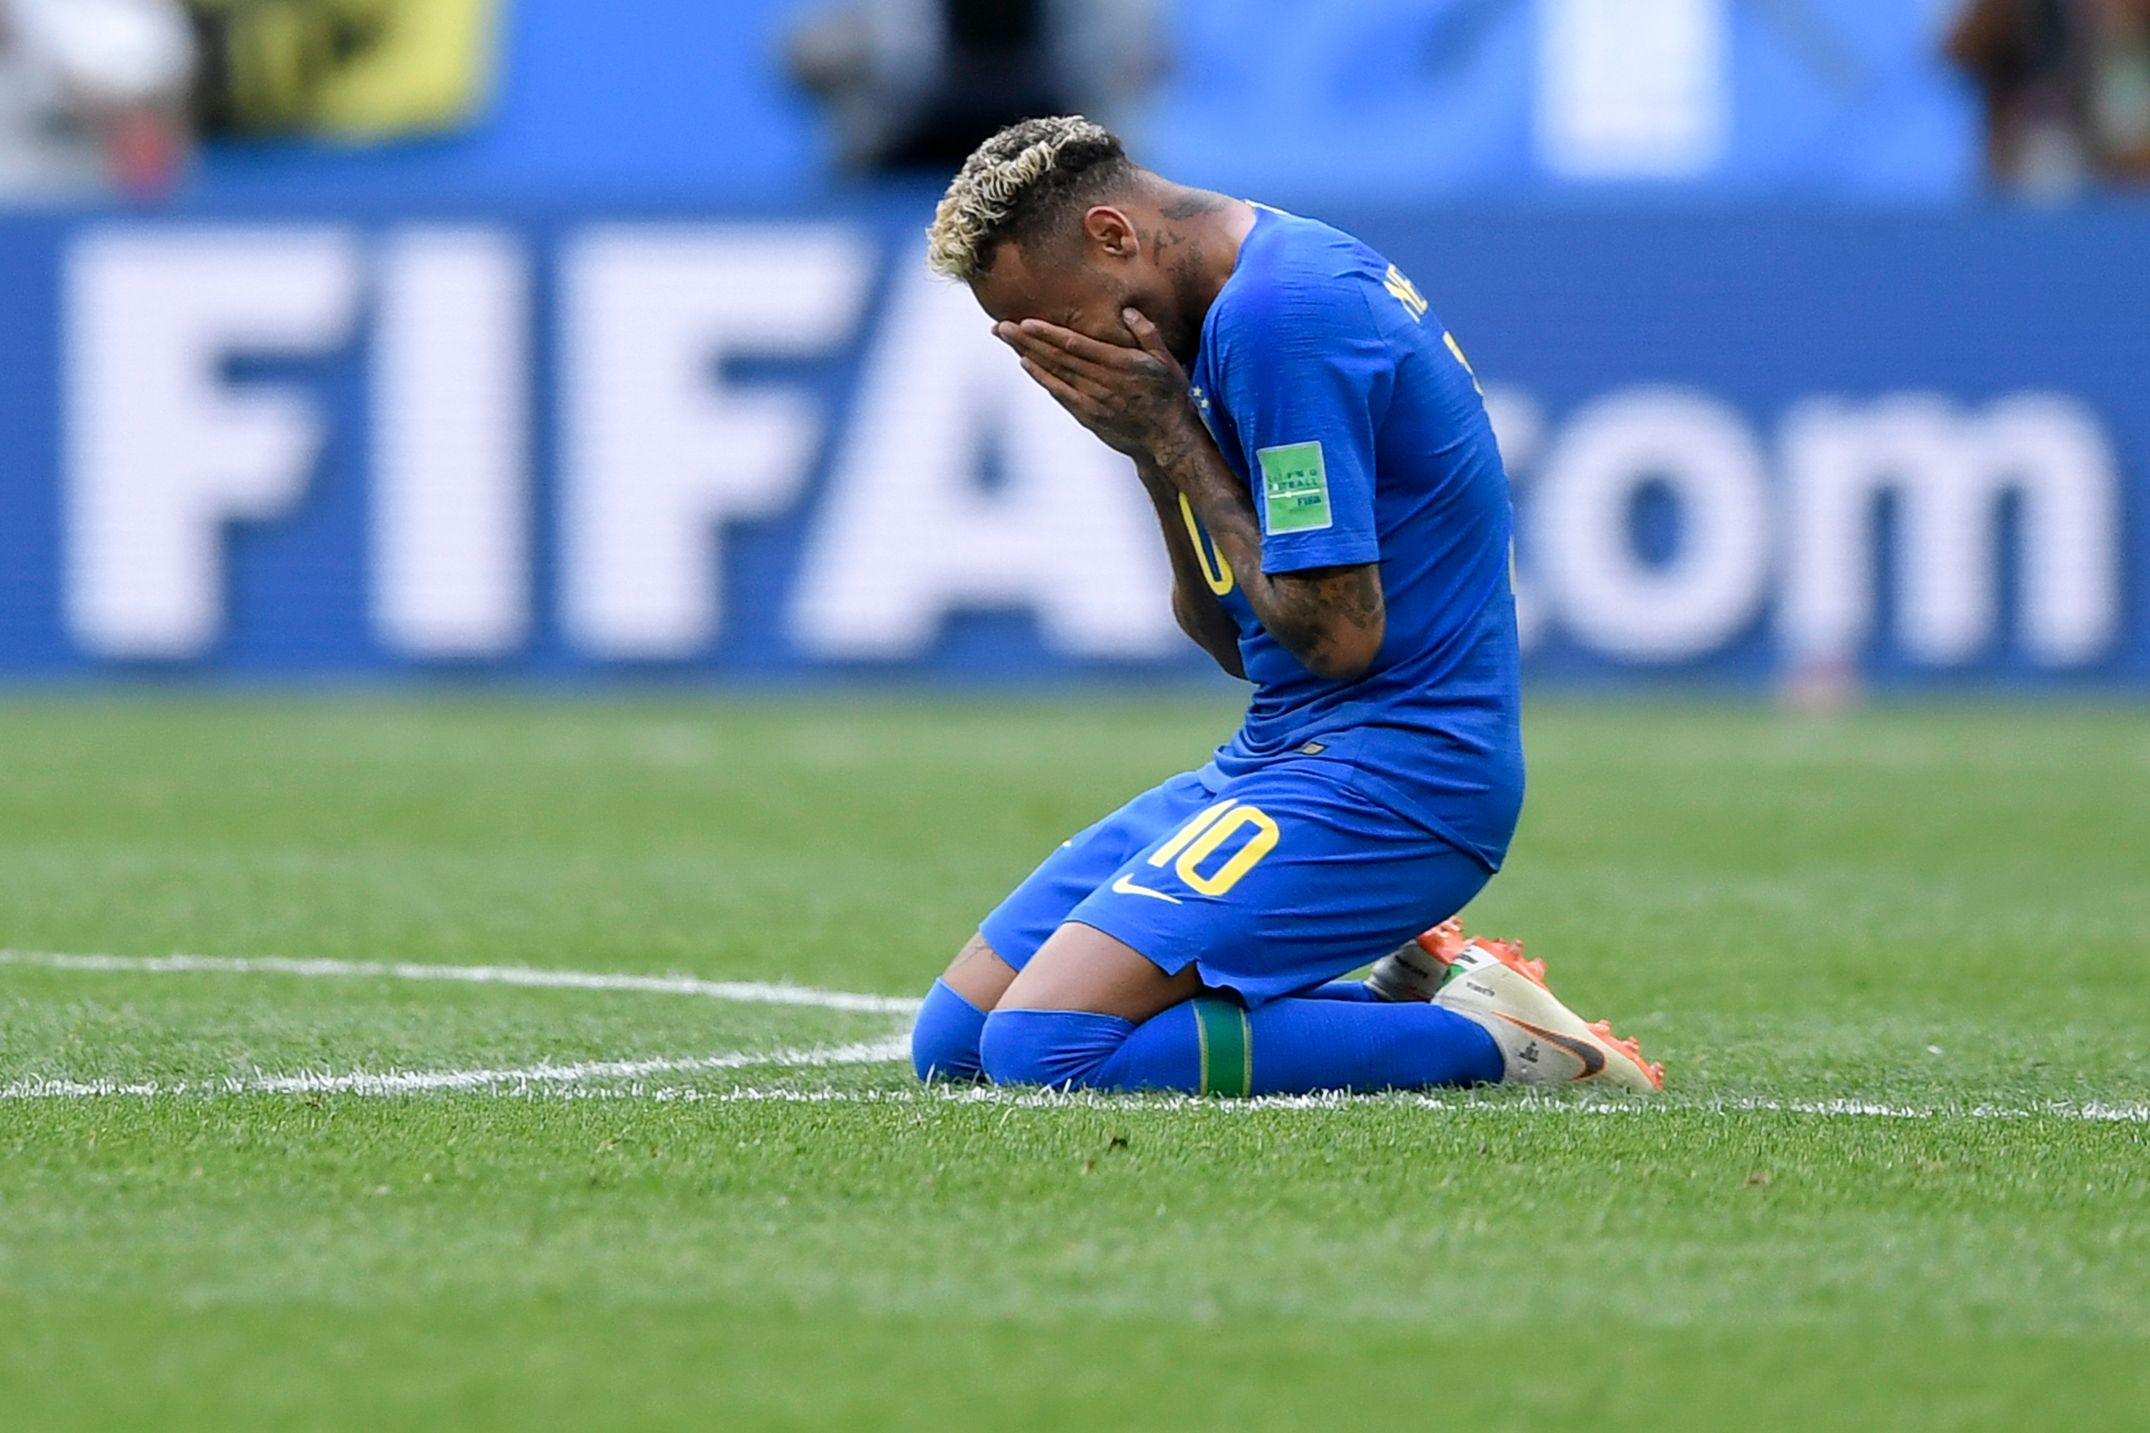 Football - Coupe du monde - Neymar fond en larmes à l'issue du match face au Costa Rica